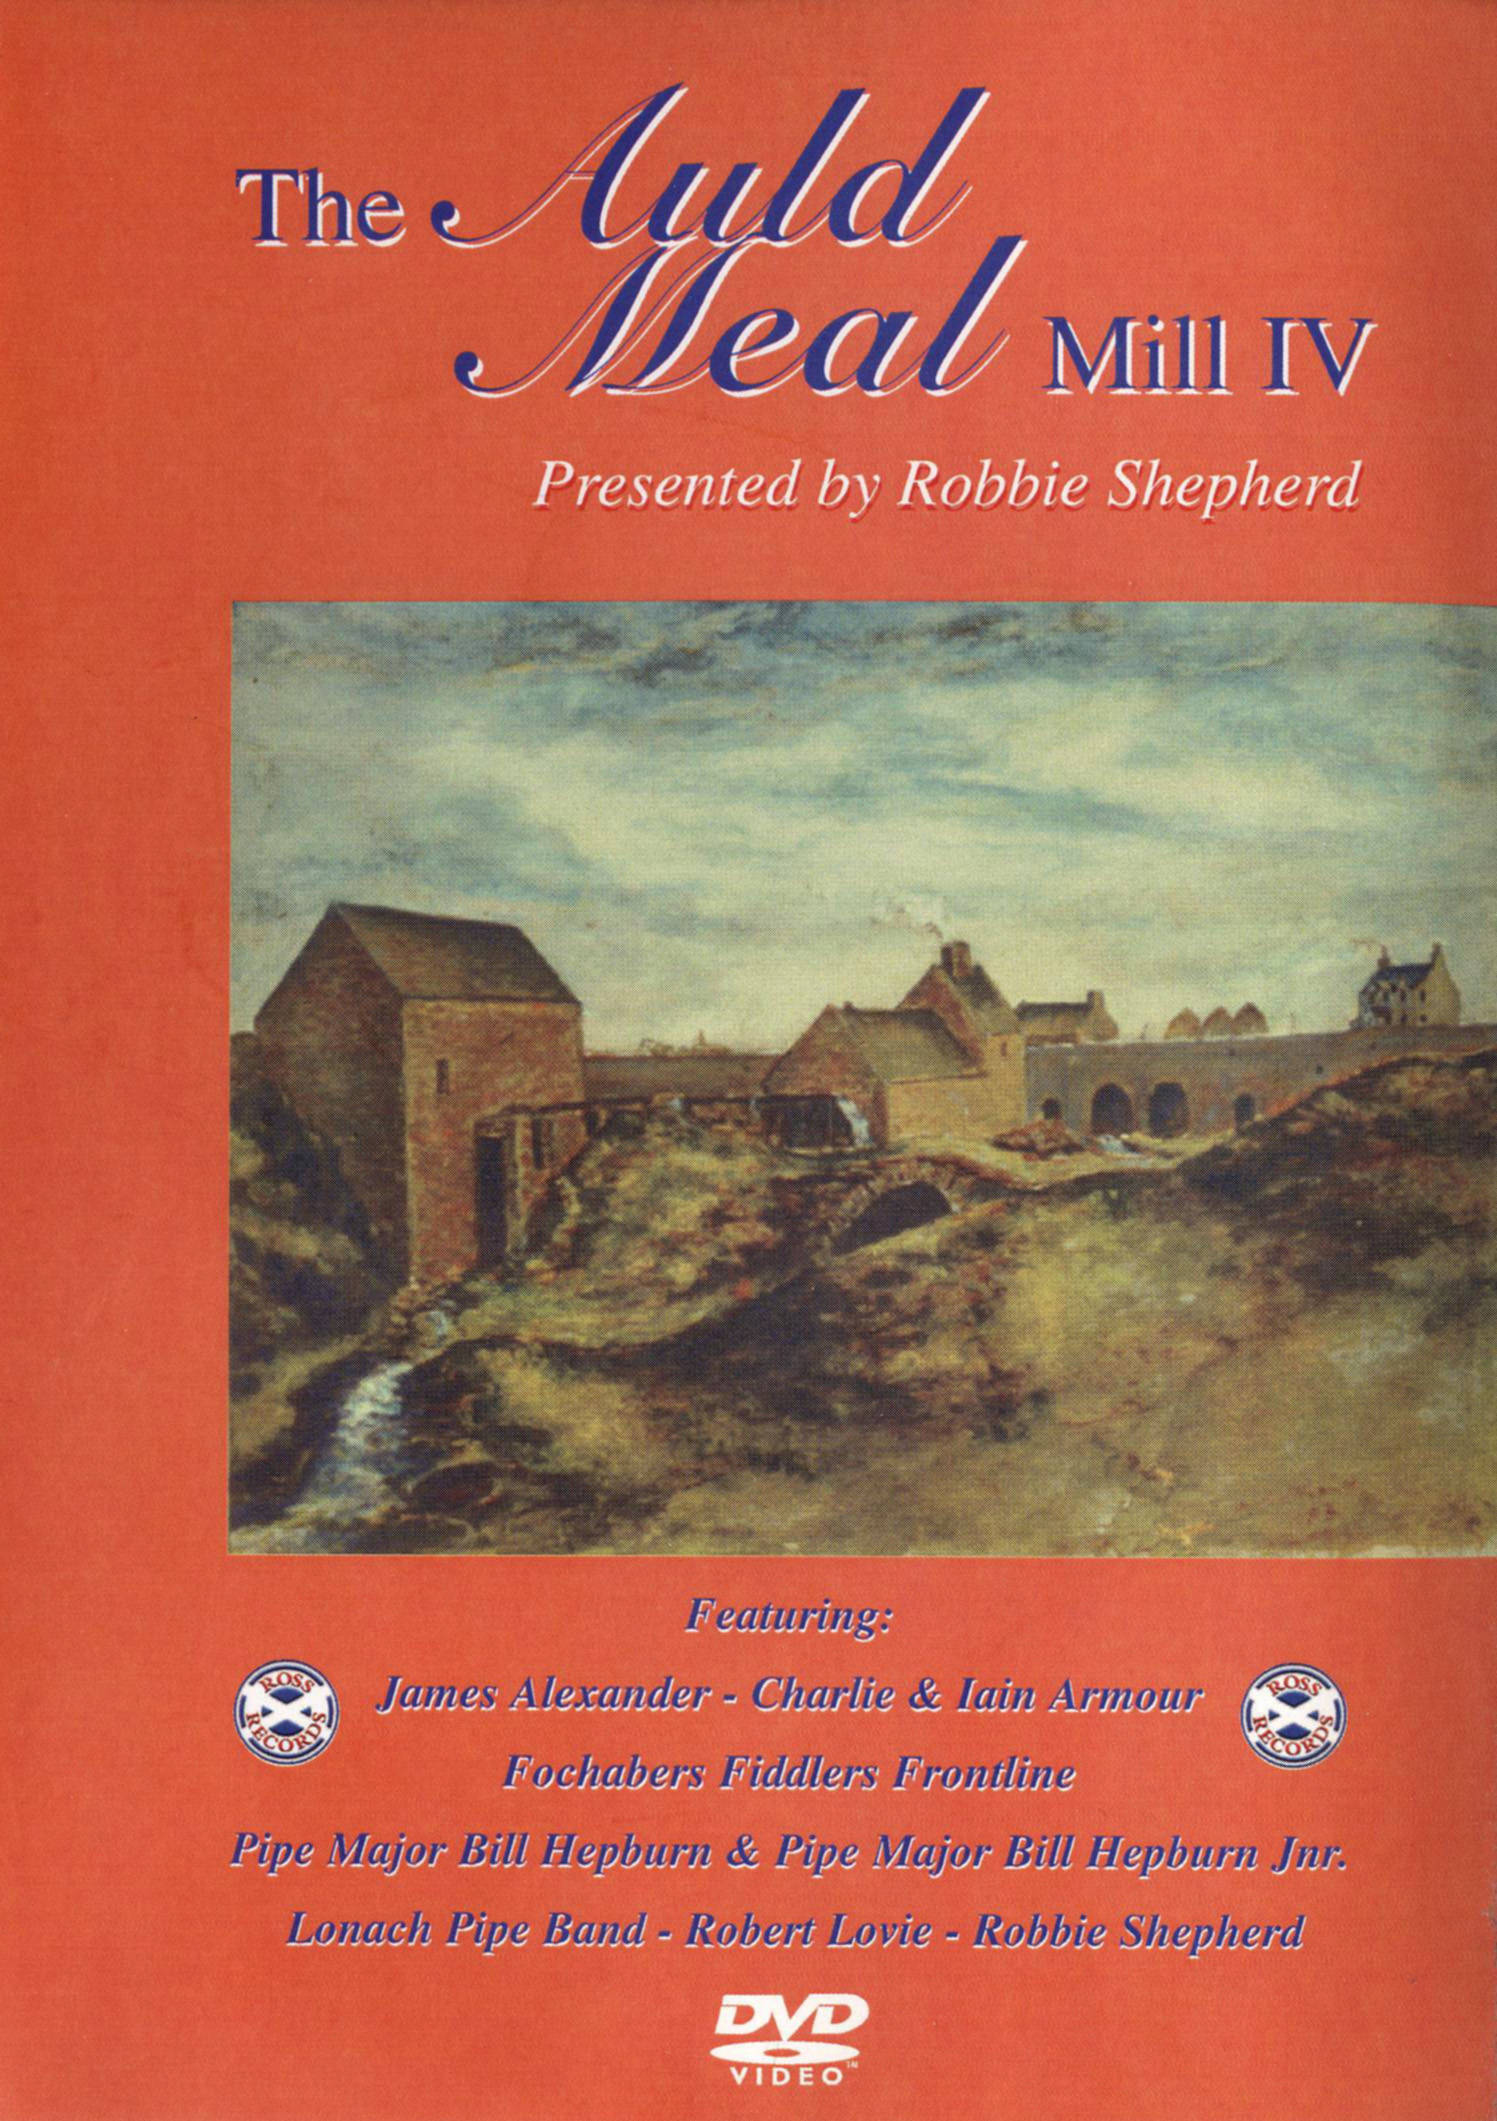 The Auld Meal: Mill IV